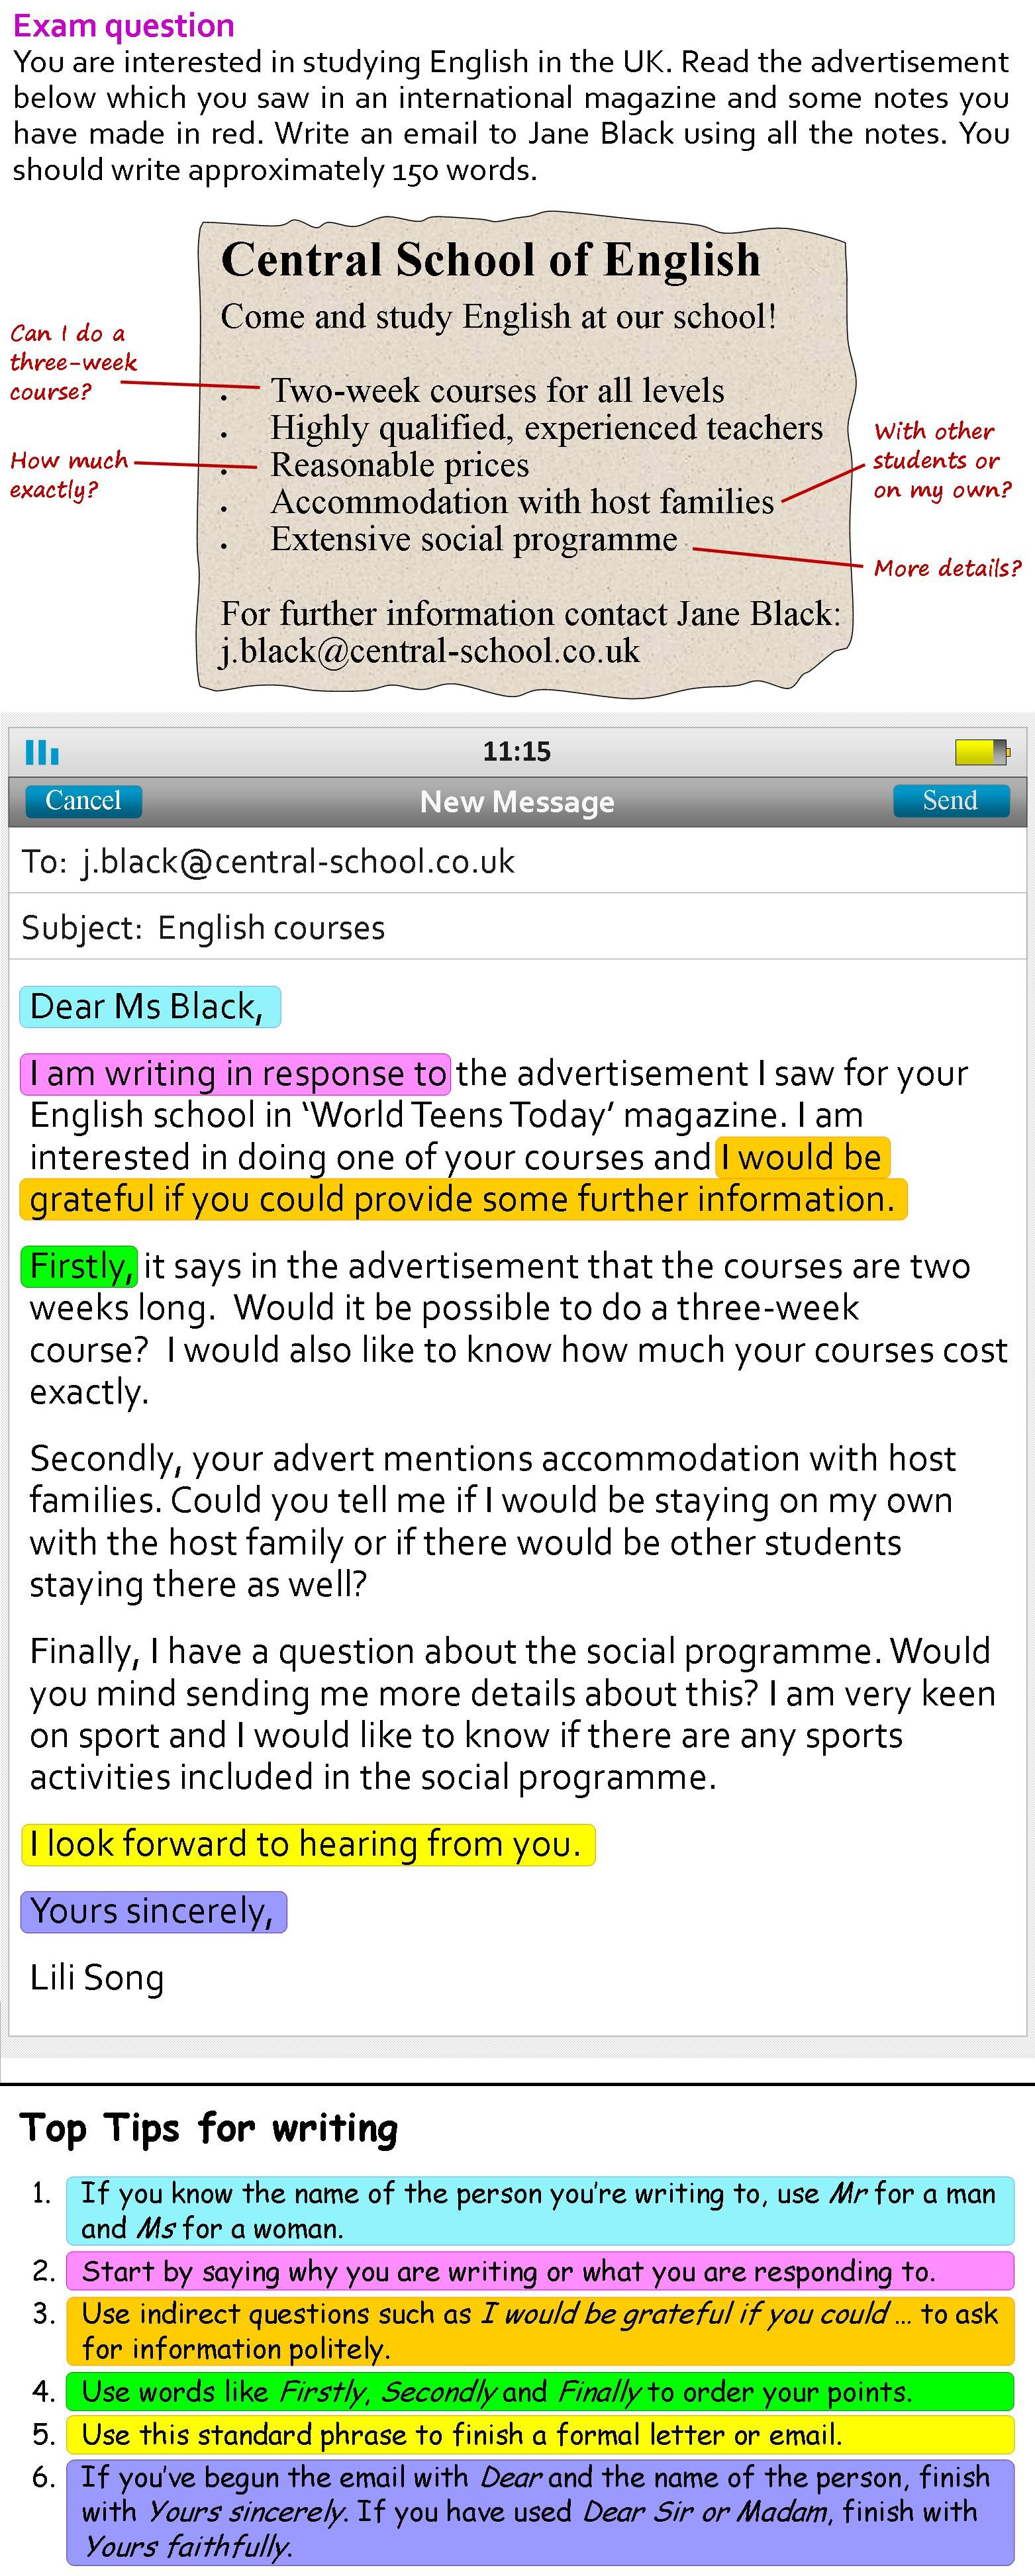 A More Formal Email